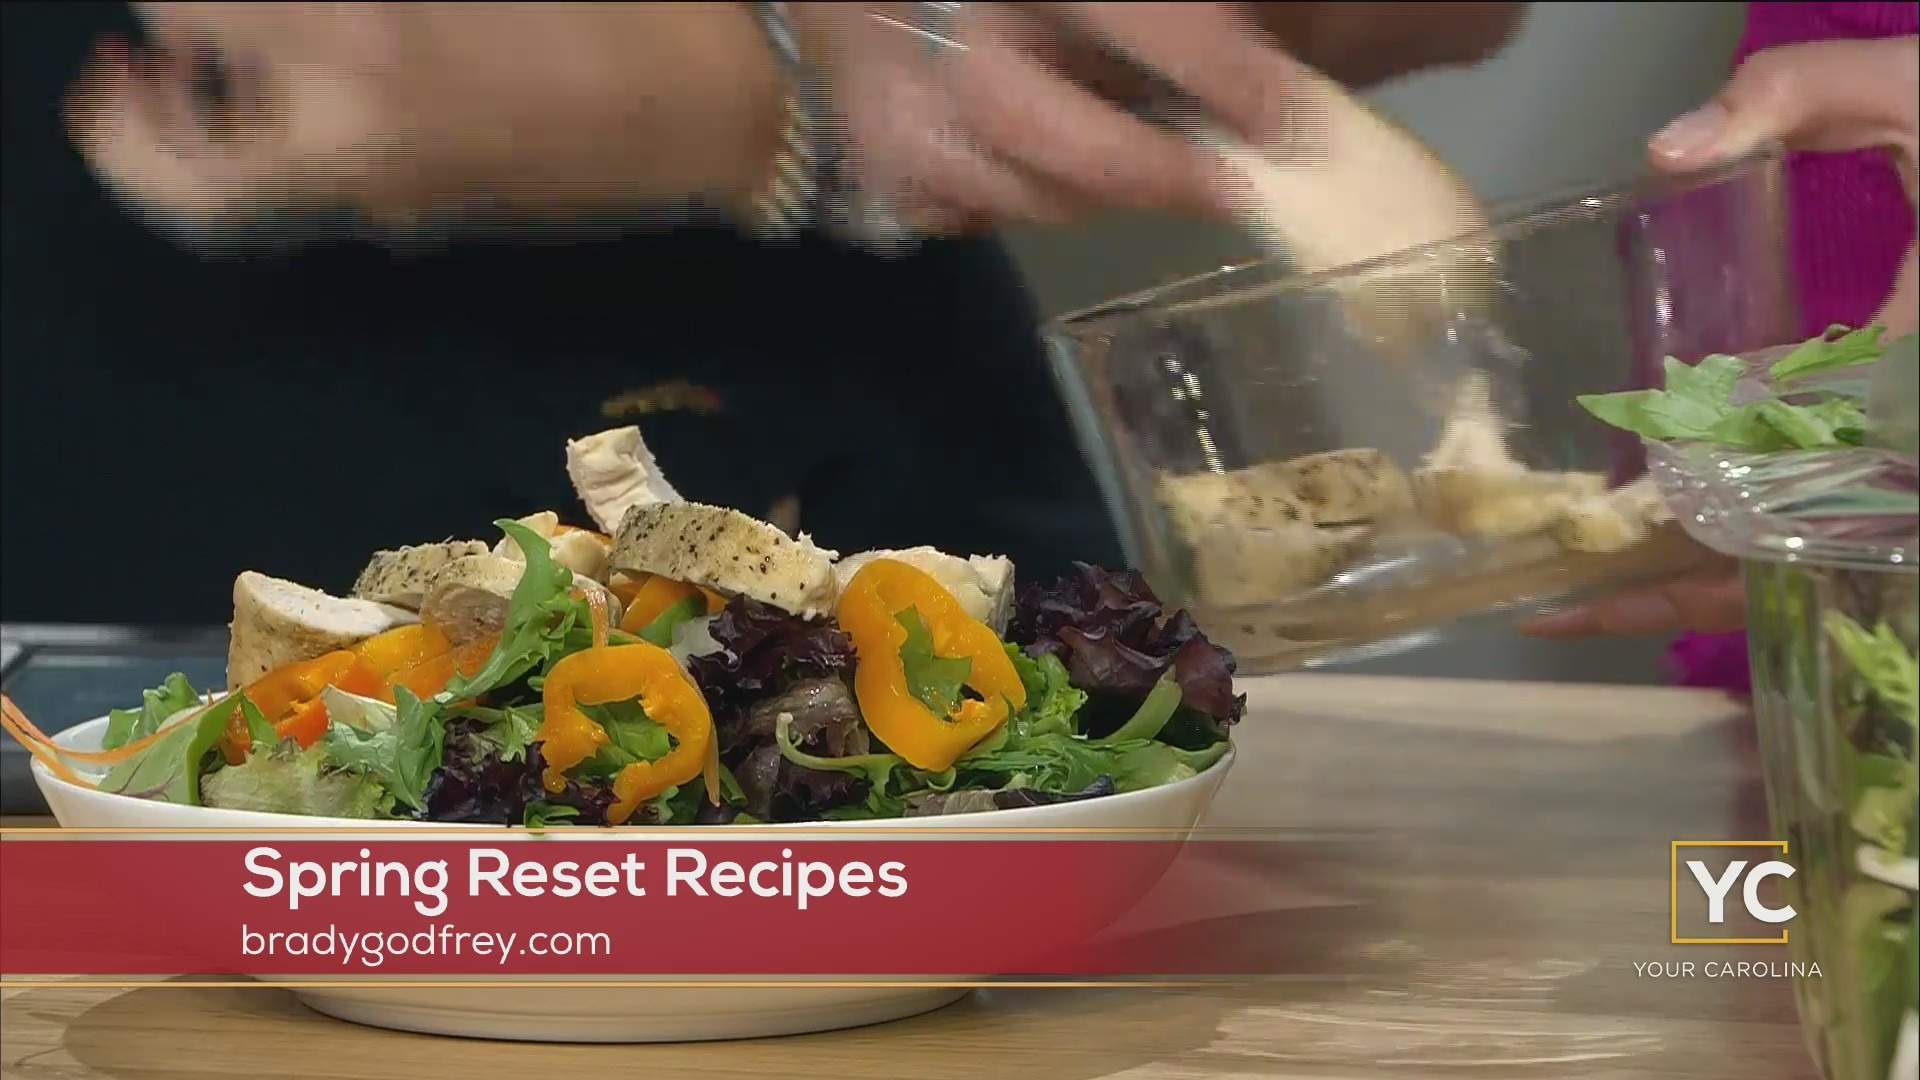 Spring Reset With A Great Salad